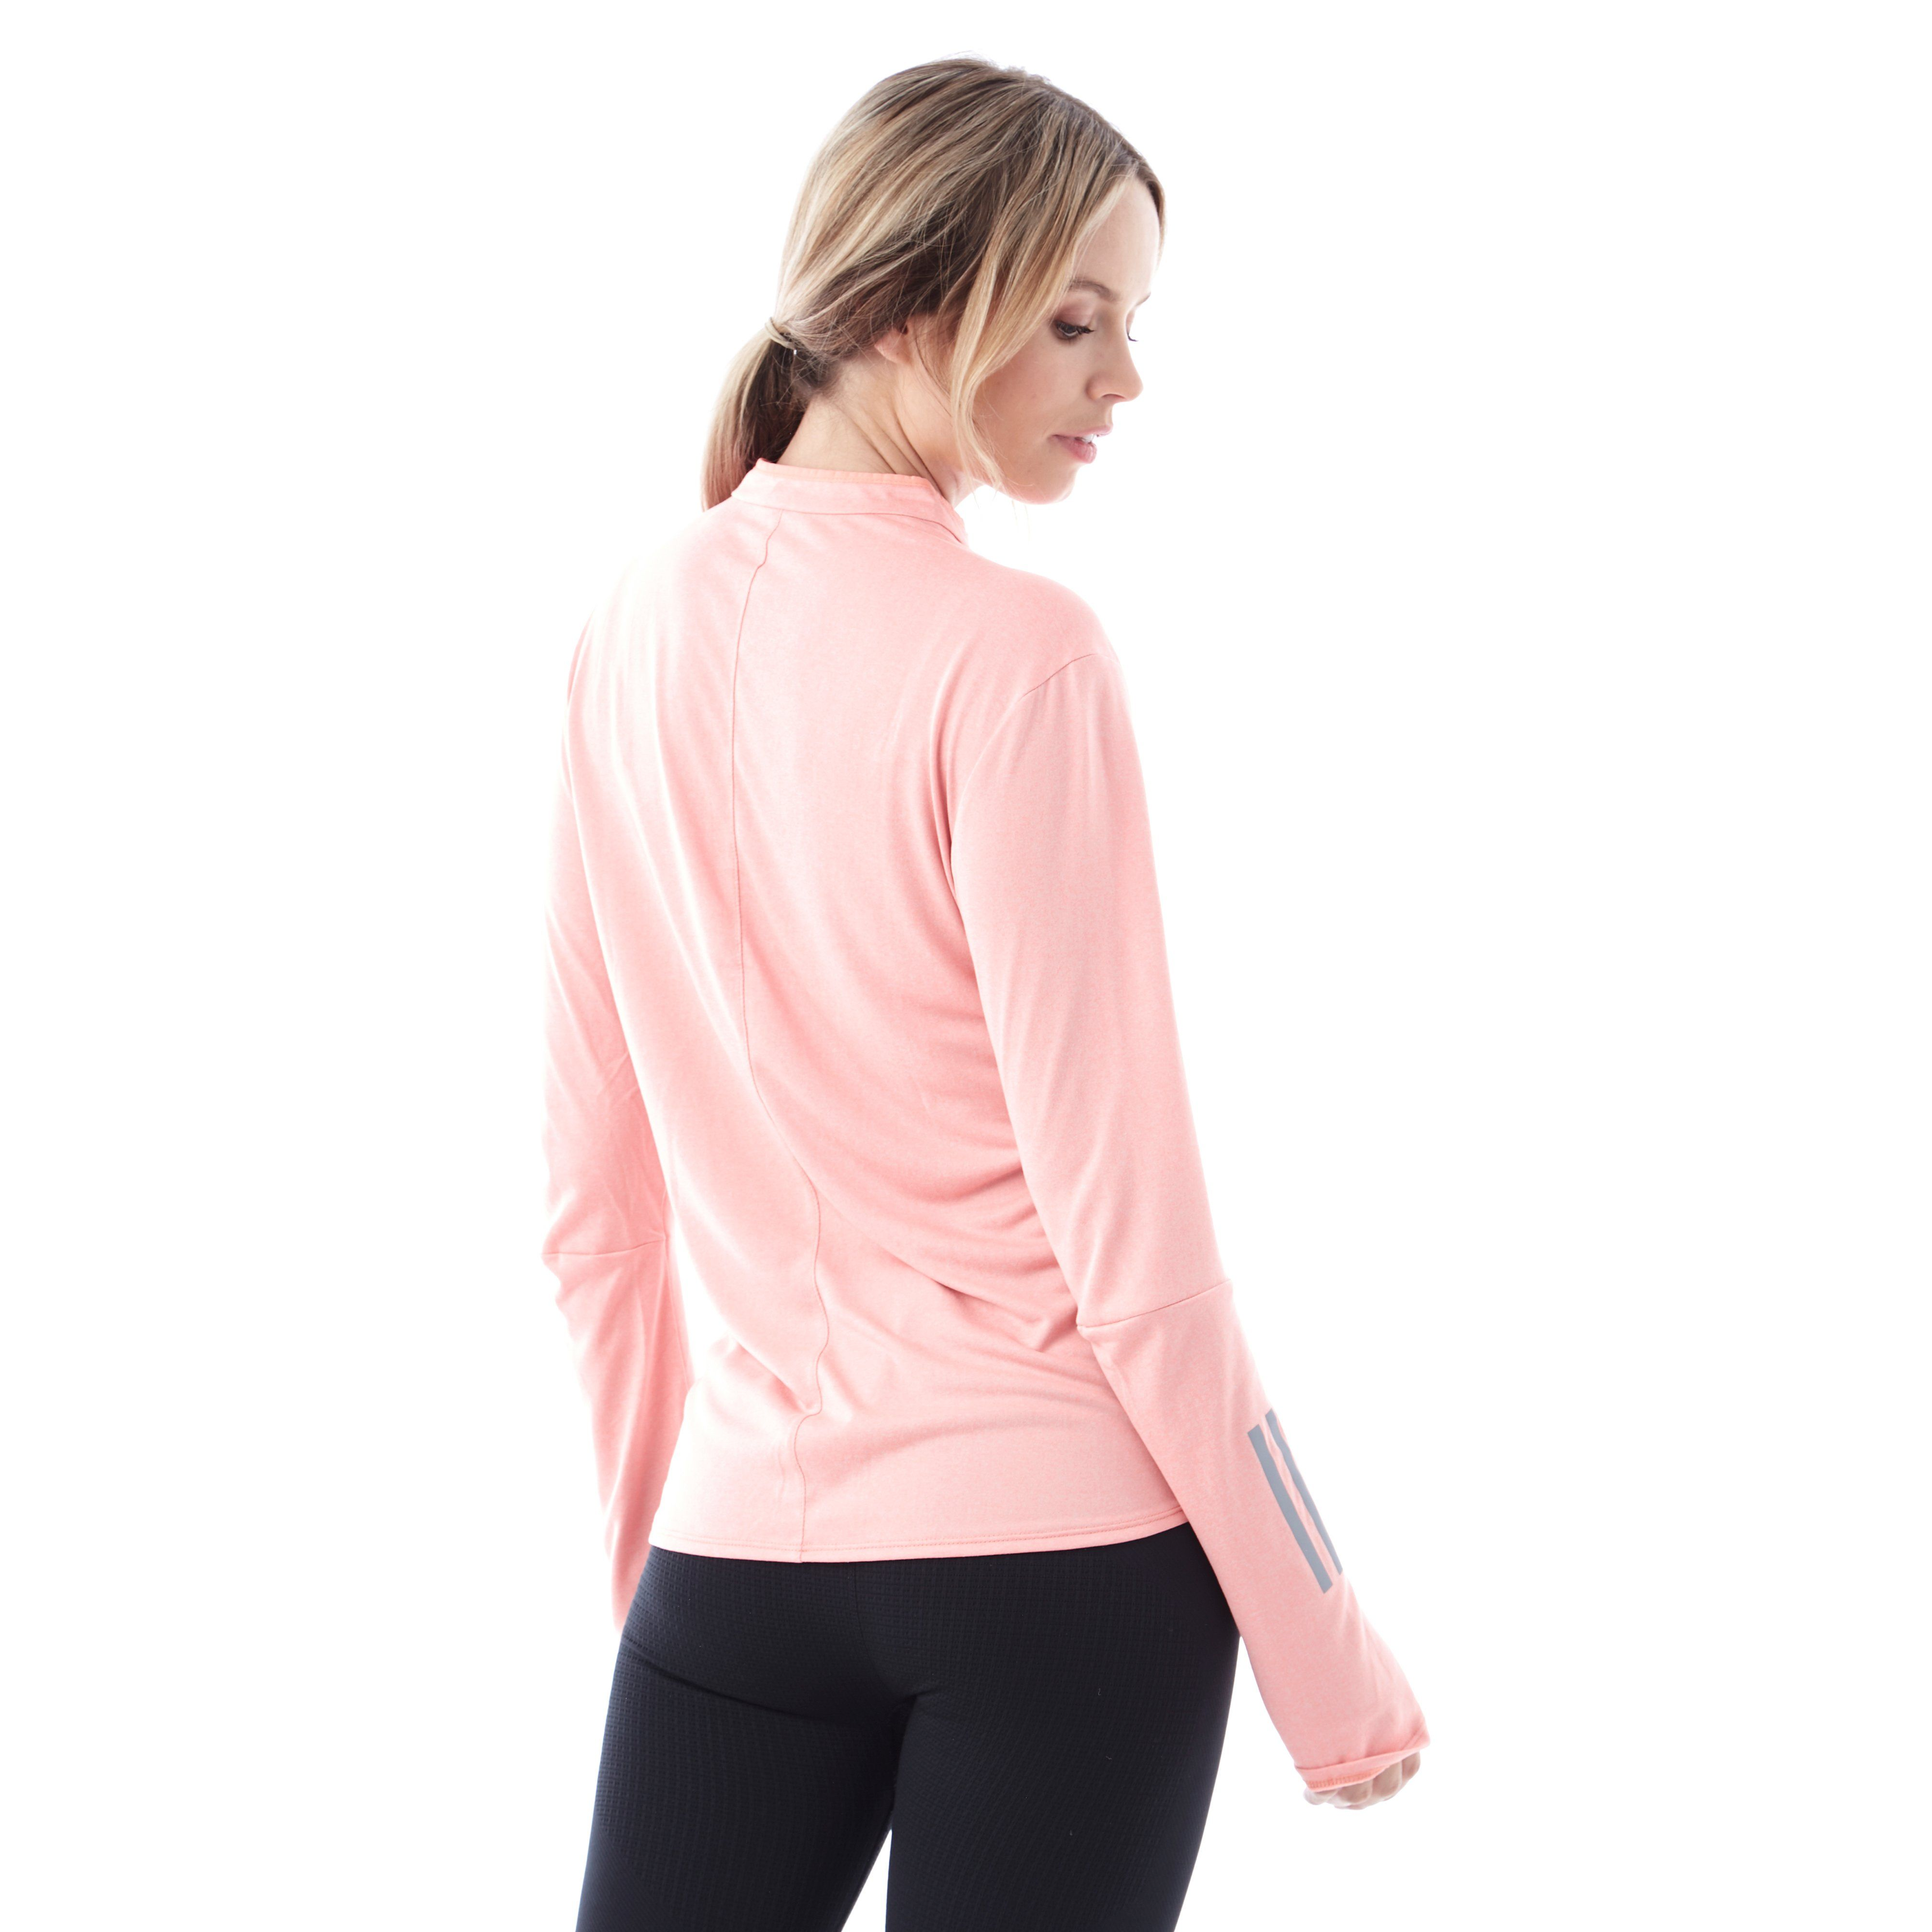 adidas Response Long Sleeve ½ zip Women's Running Top